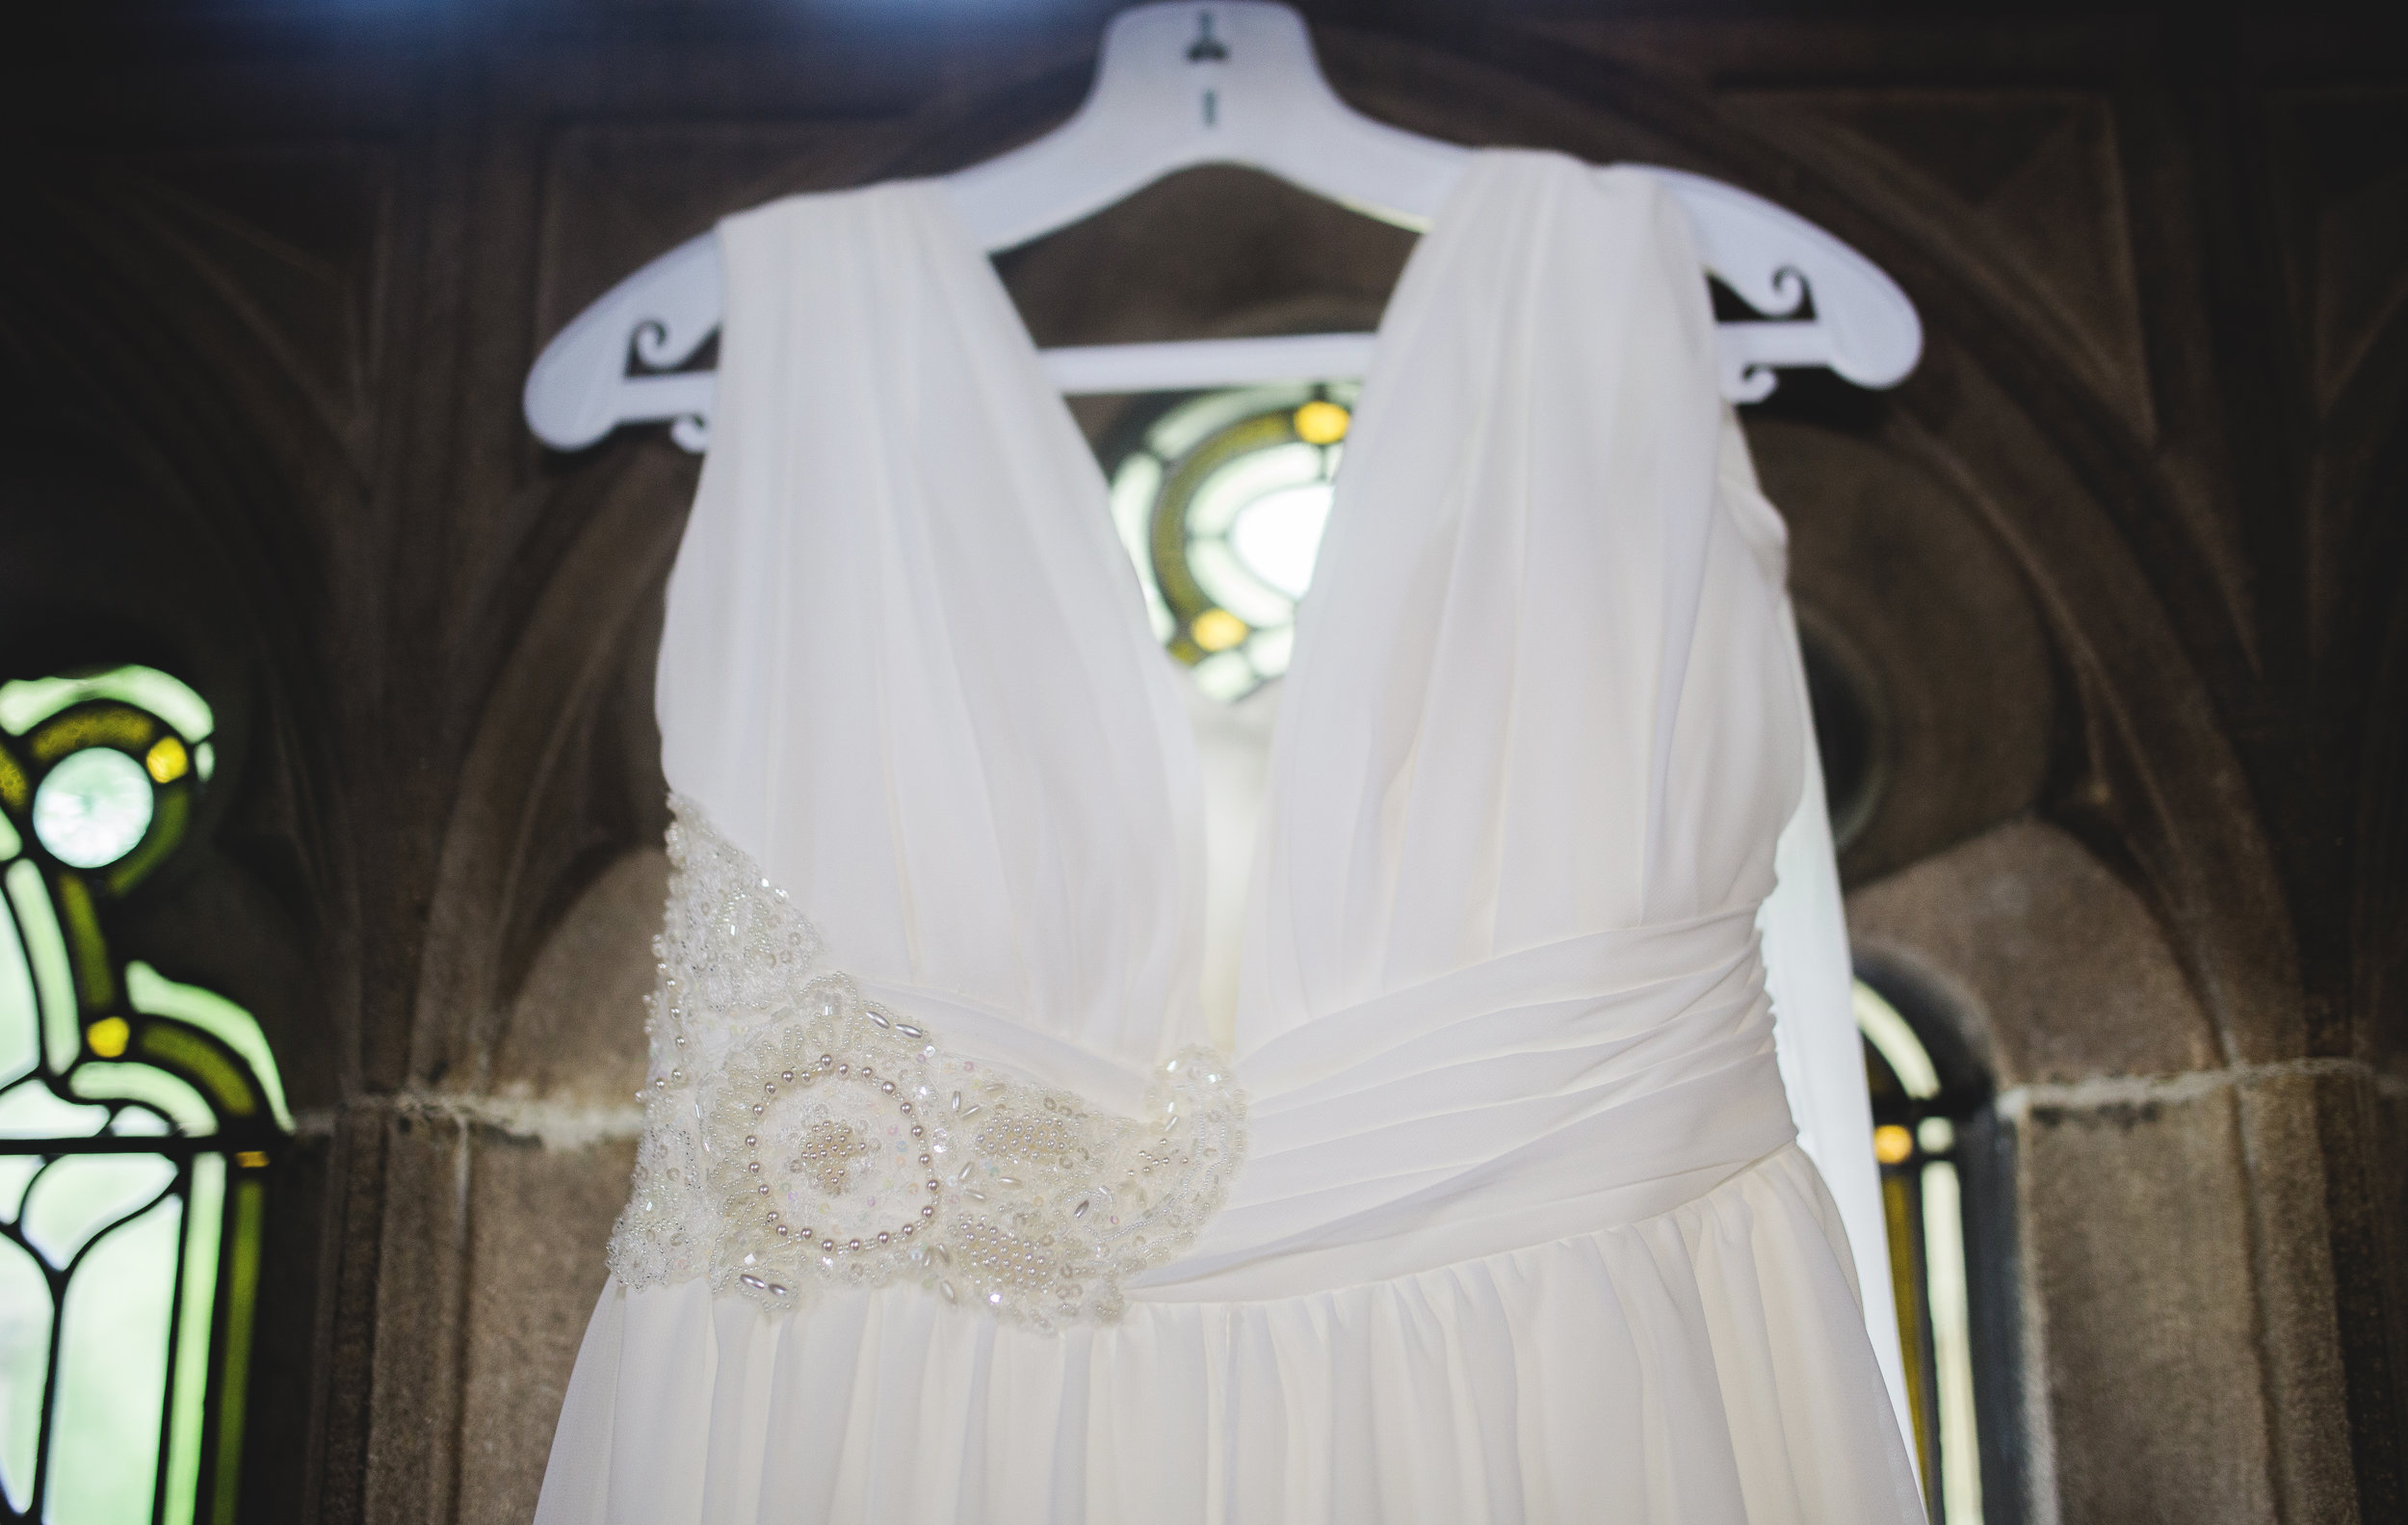 dress hanging up at Whalley Abbey.